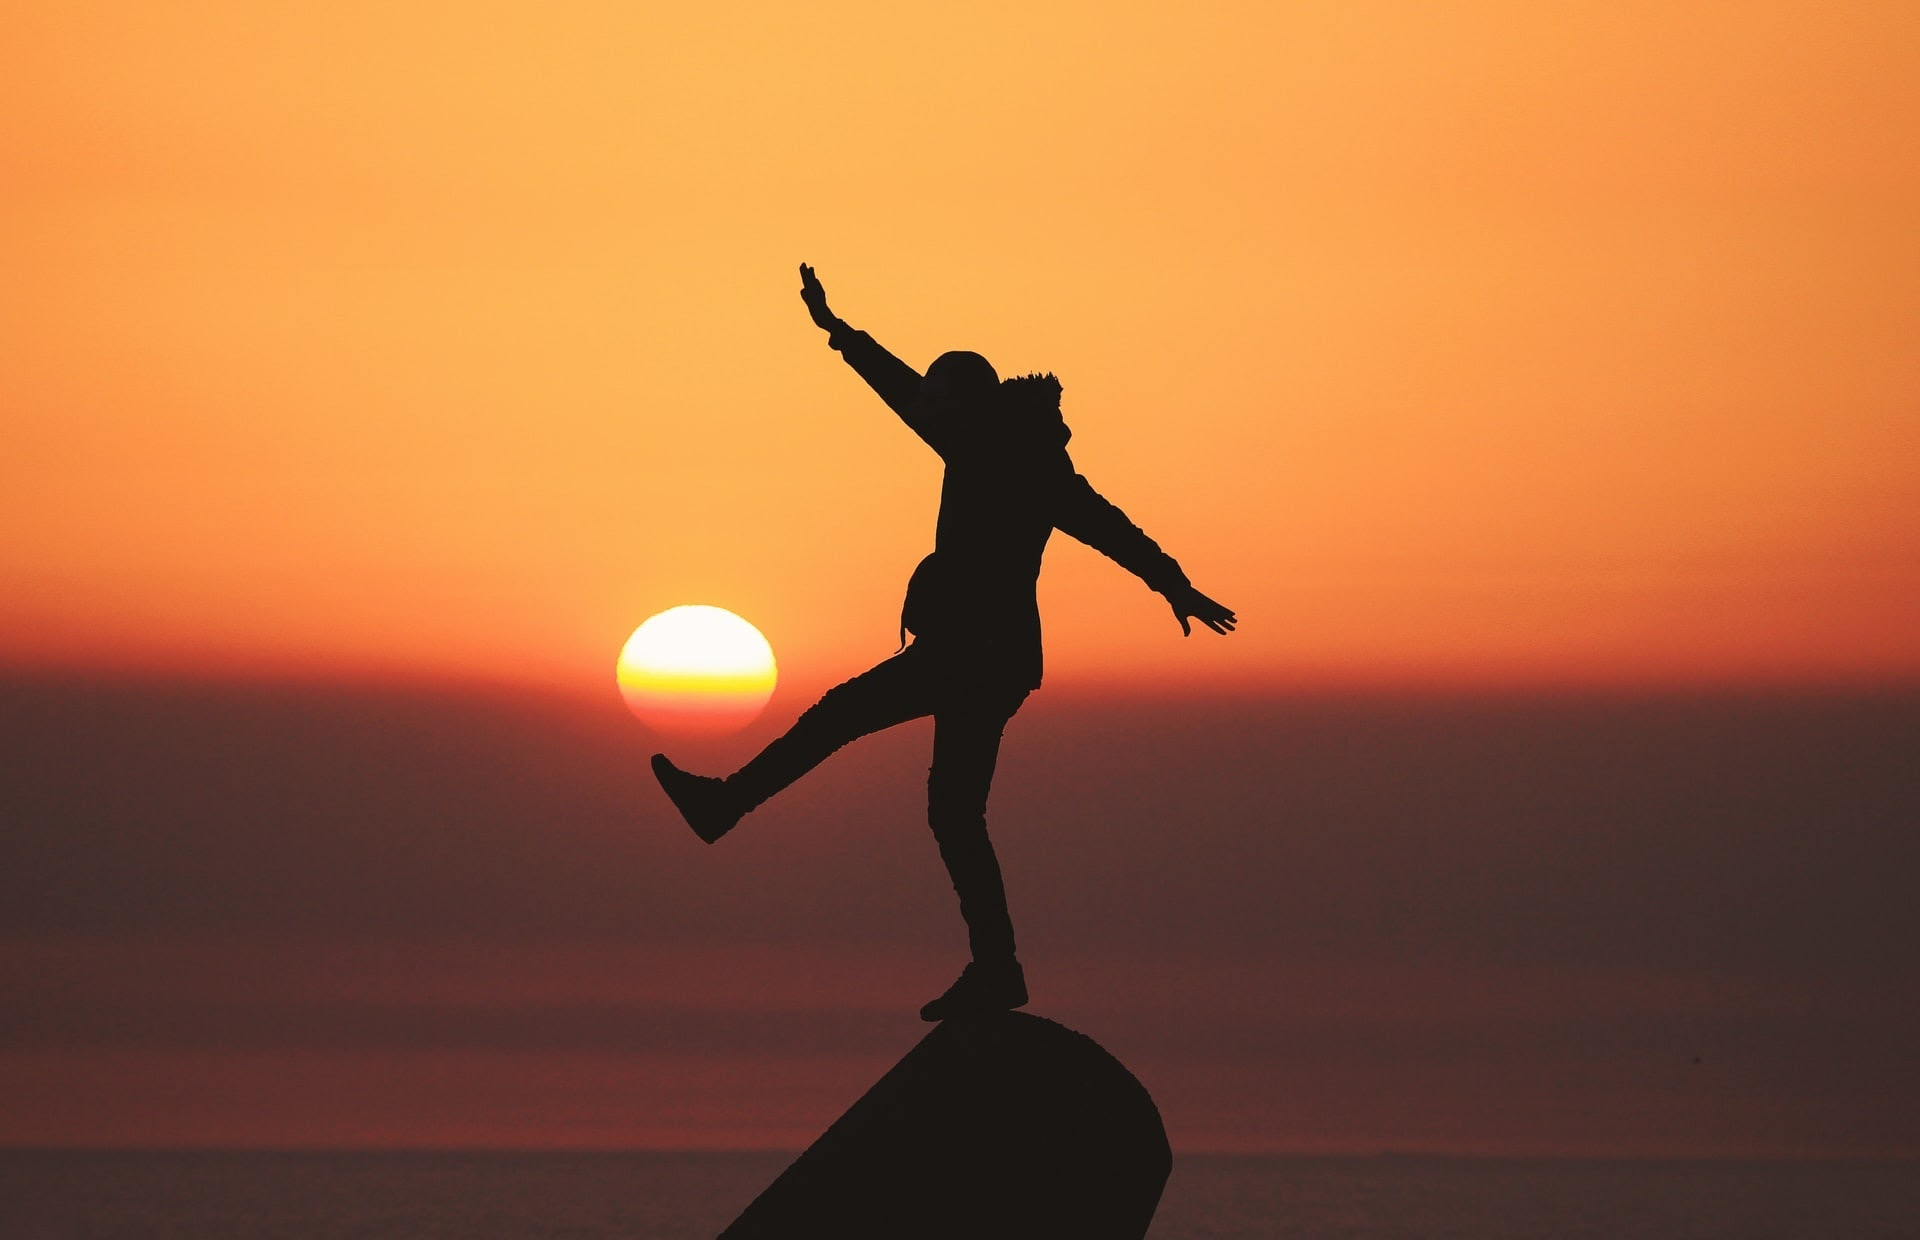 silhouette of a person balancing on something during a sunset